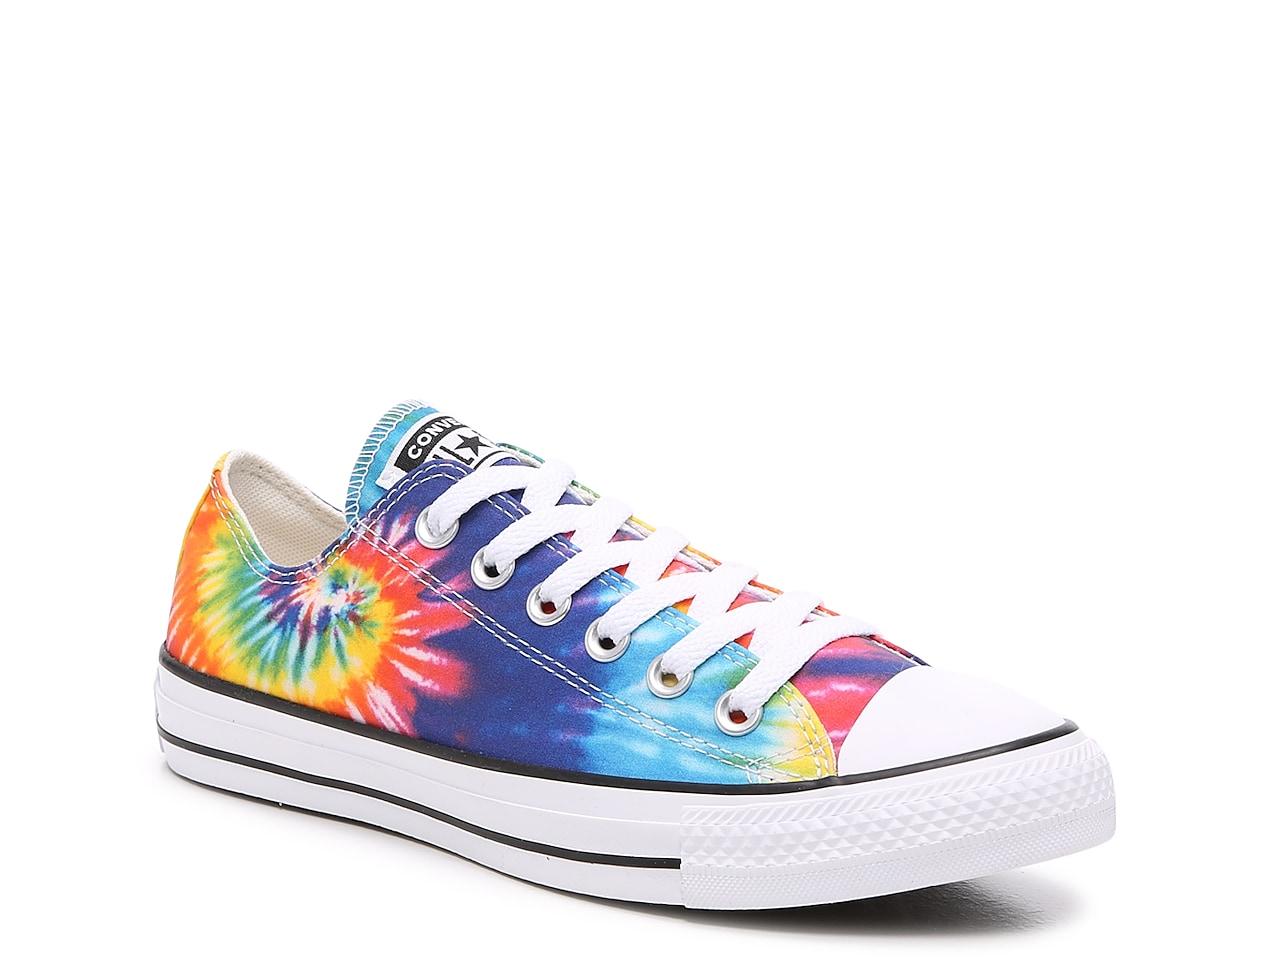 Chuck Taylor All Star Rainbow Tie-Dye High-Top Sneaker